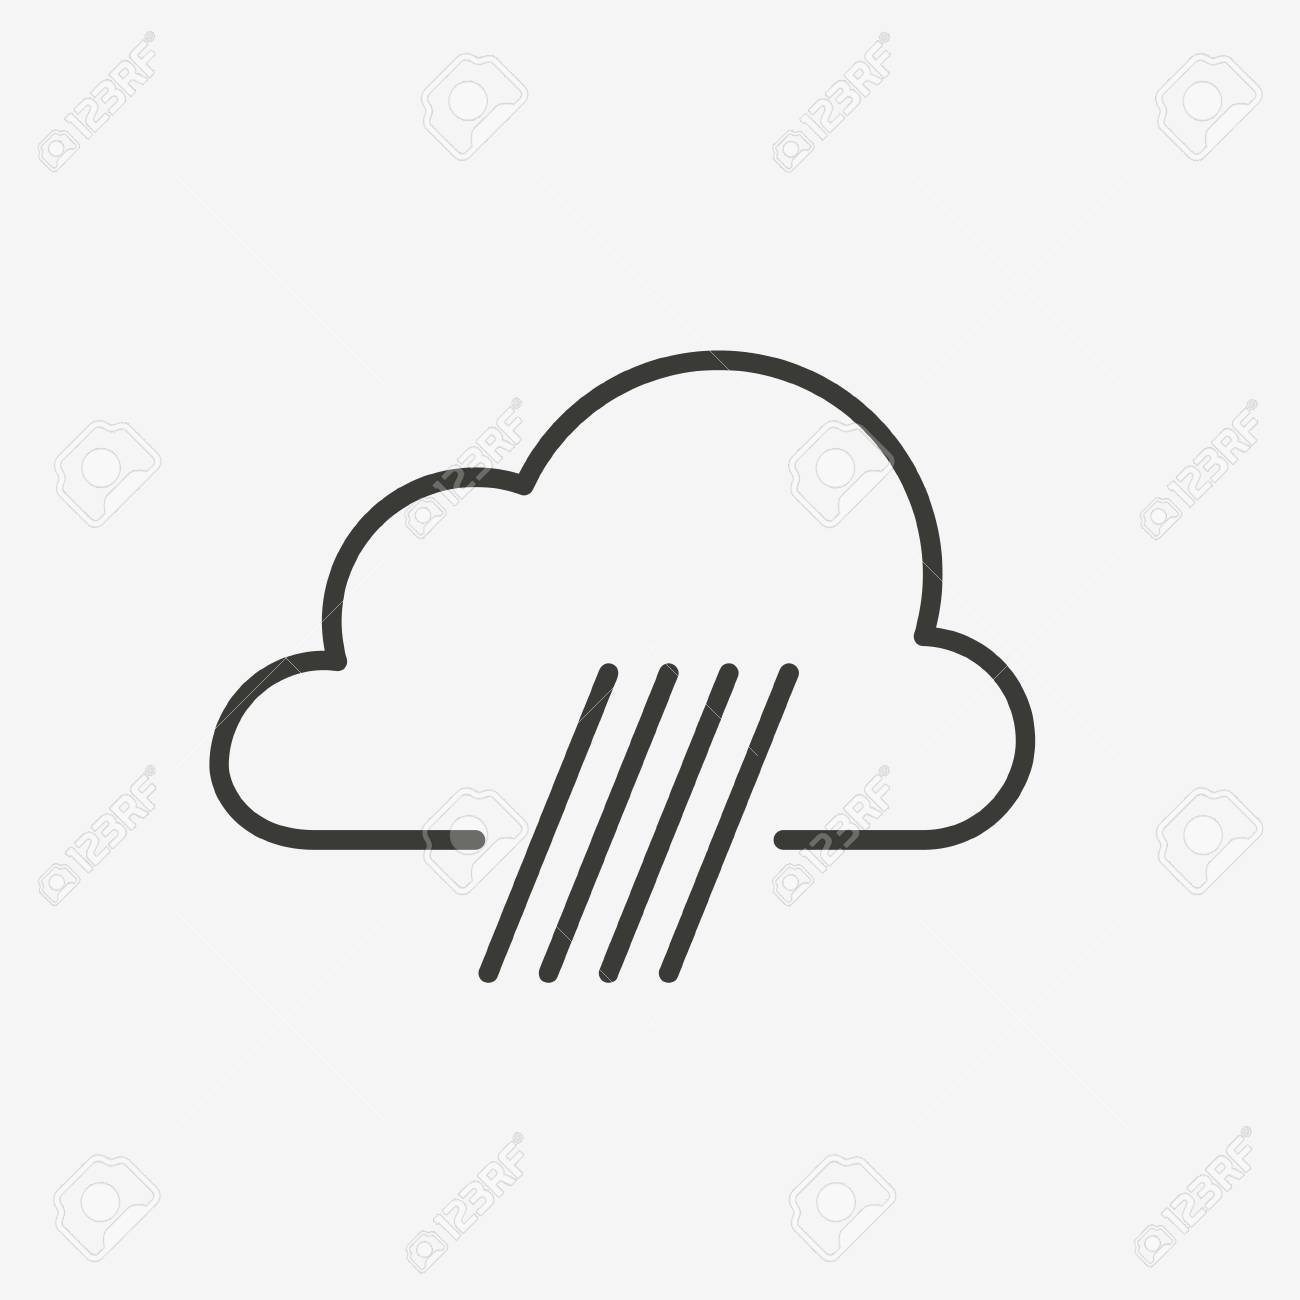 rain cloud icon of brown outline for illustration